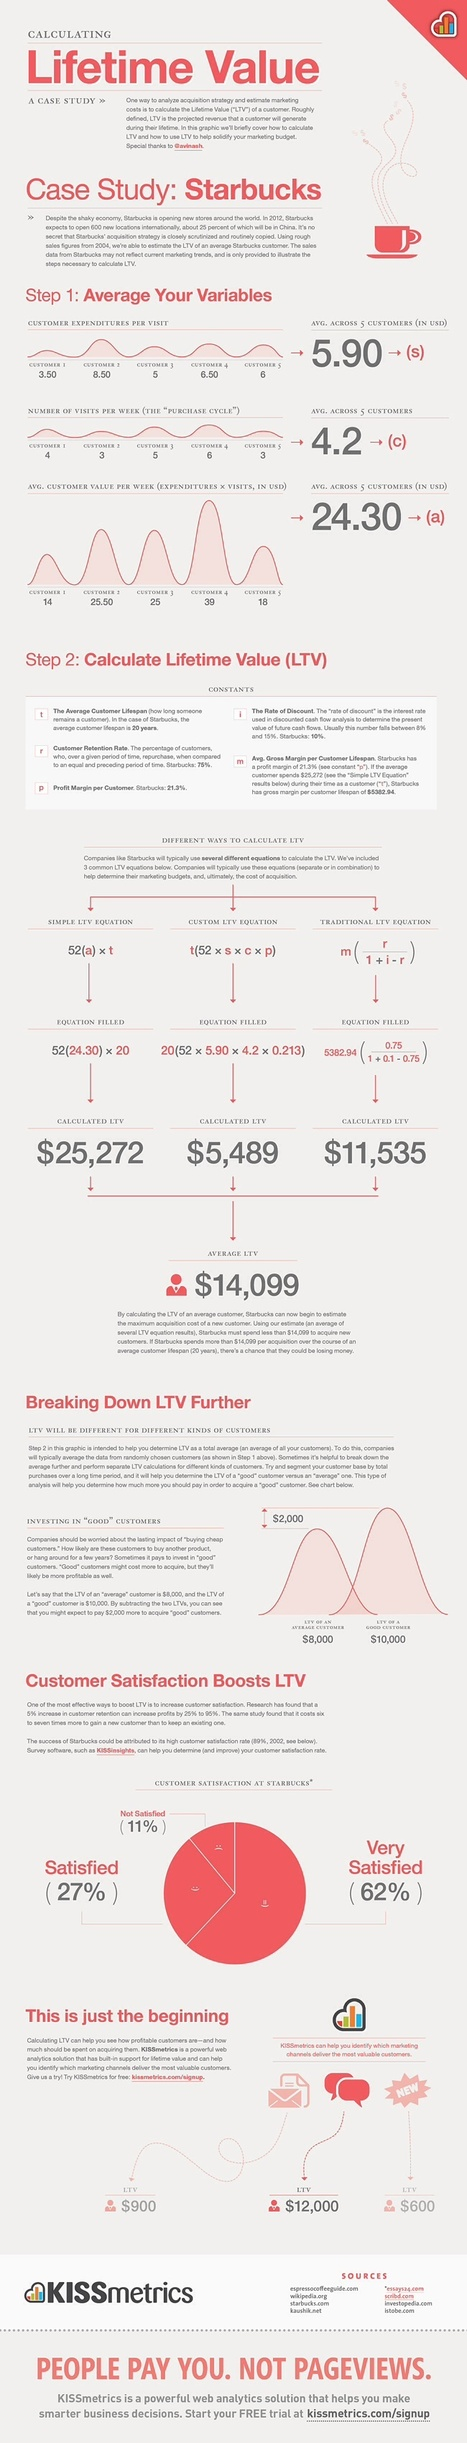 How Much Are Your Customers Worth? #Infographic | Denver CO Small Business and Entrepreneur Information Center | Scoop.it